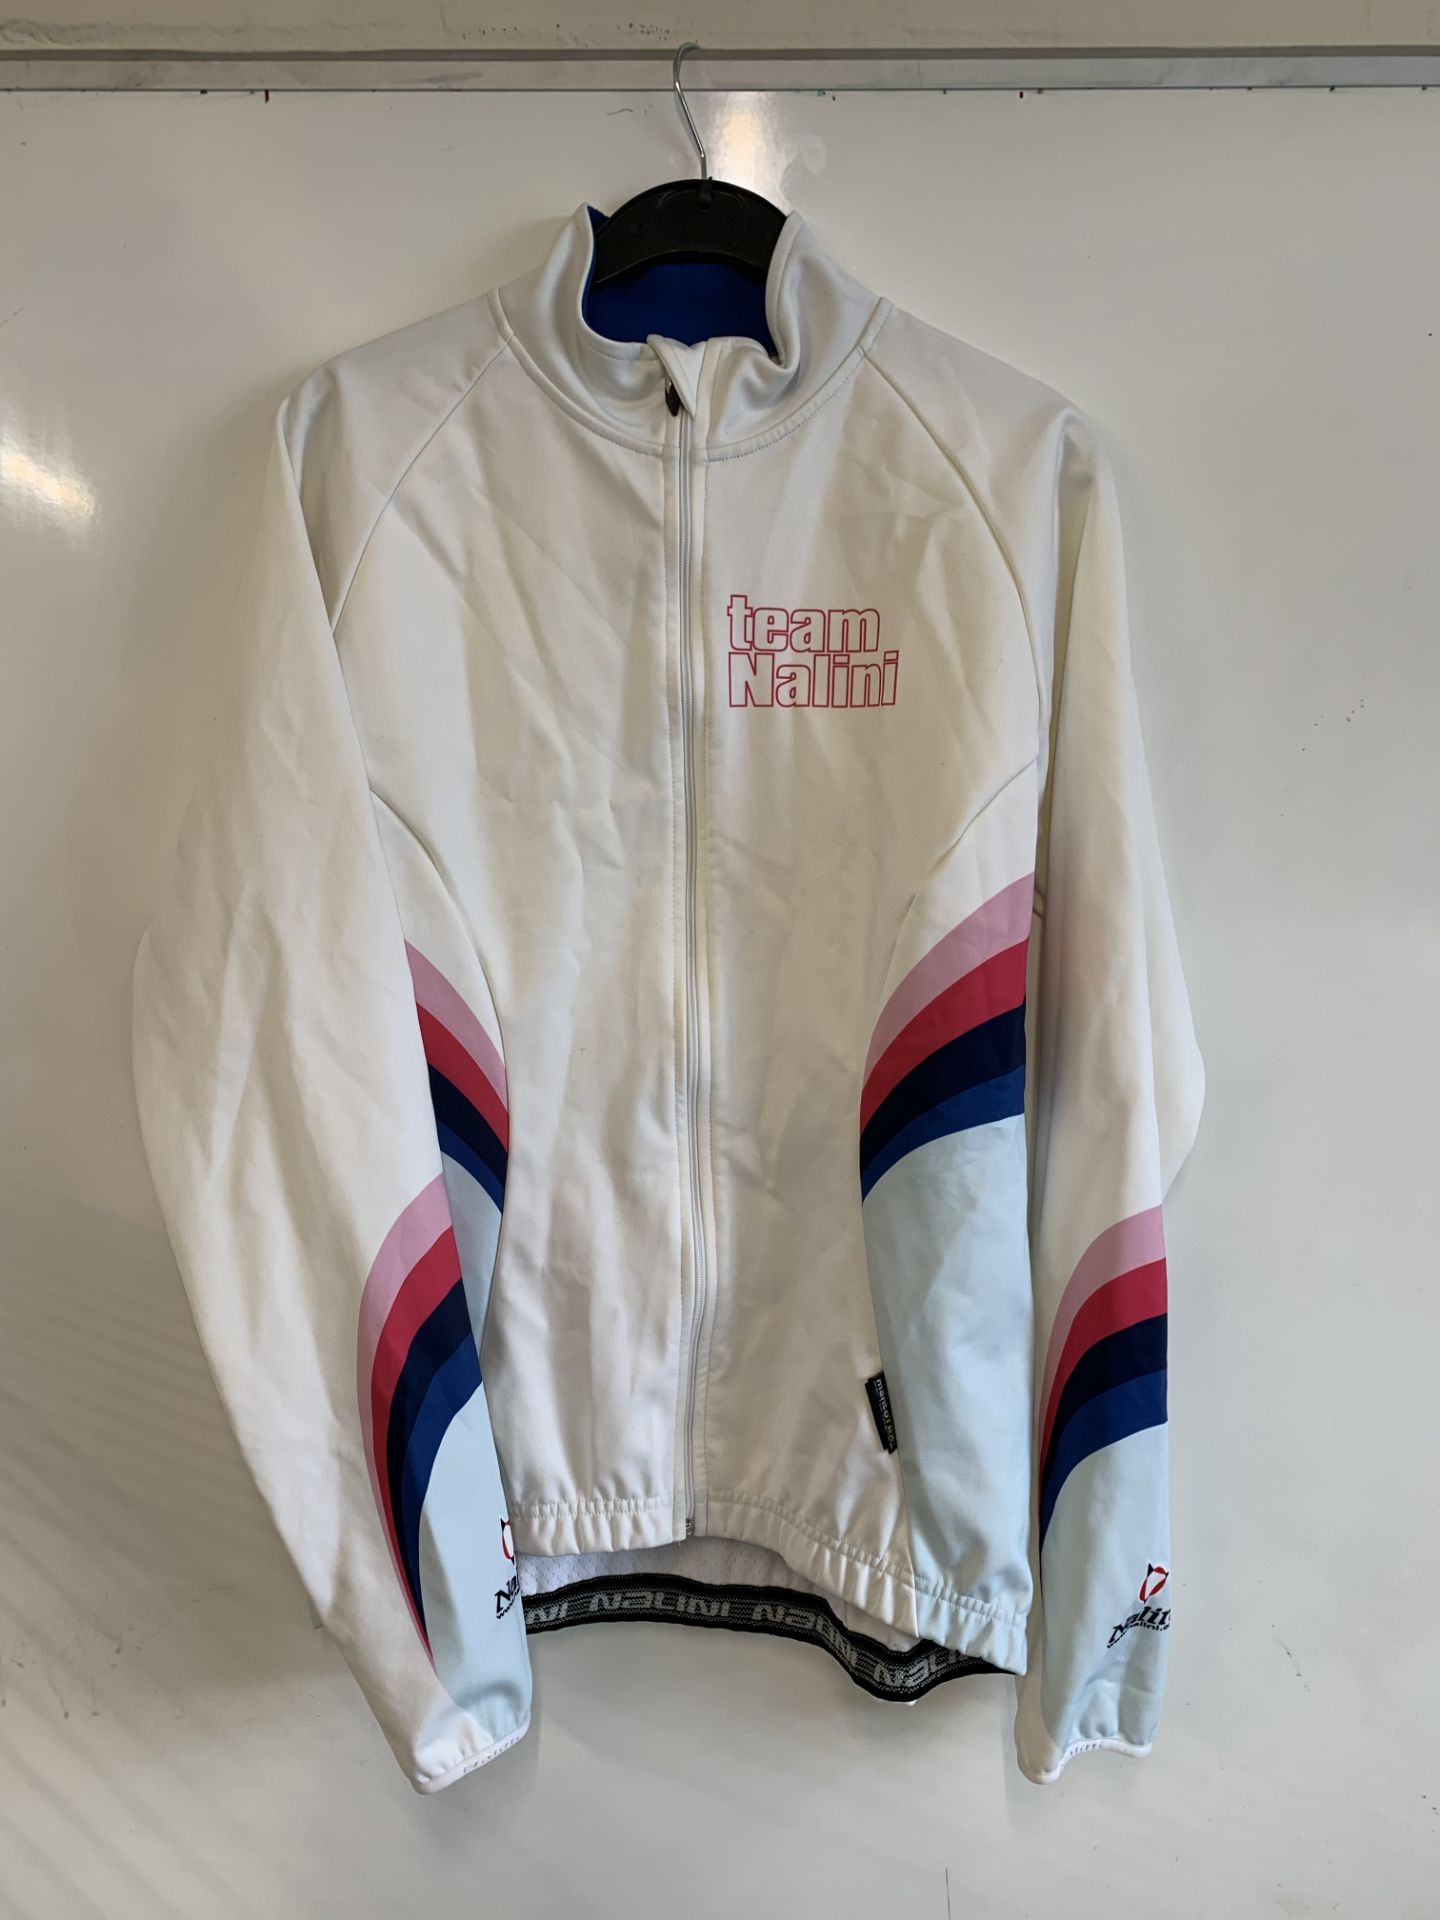 Lot 7 - Nalini mantotex pro cycling jacket